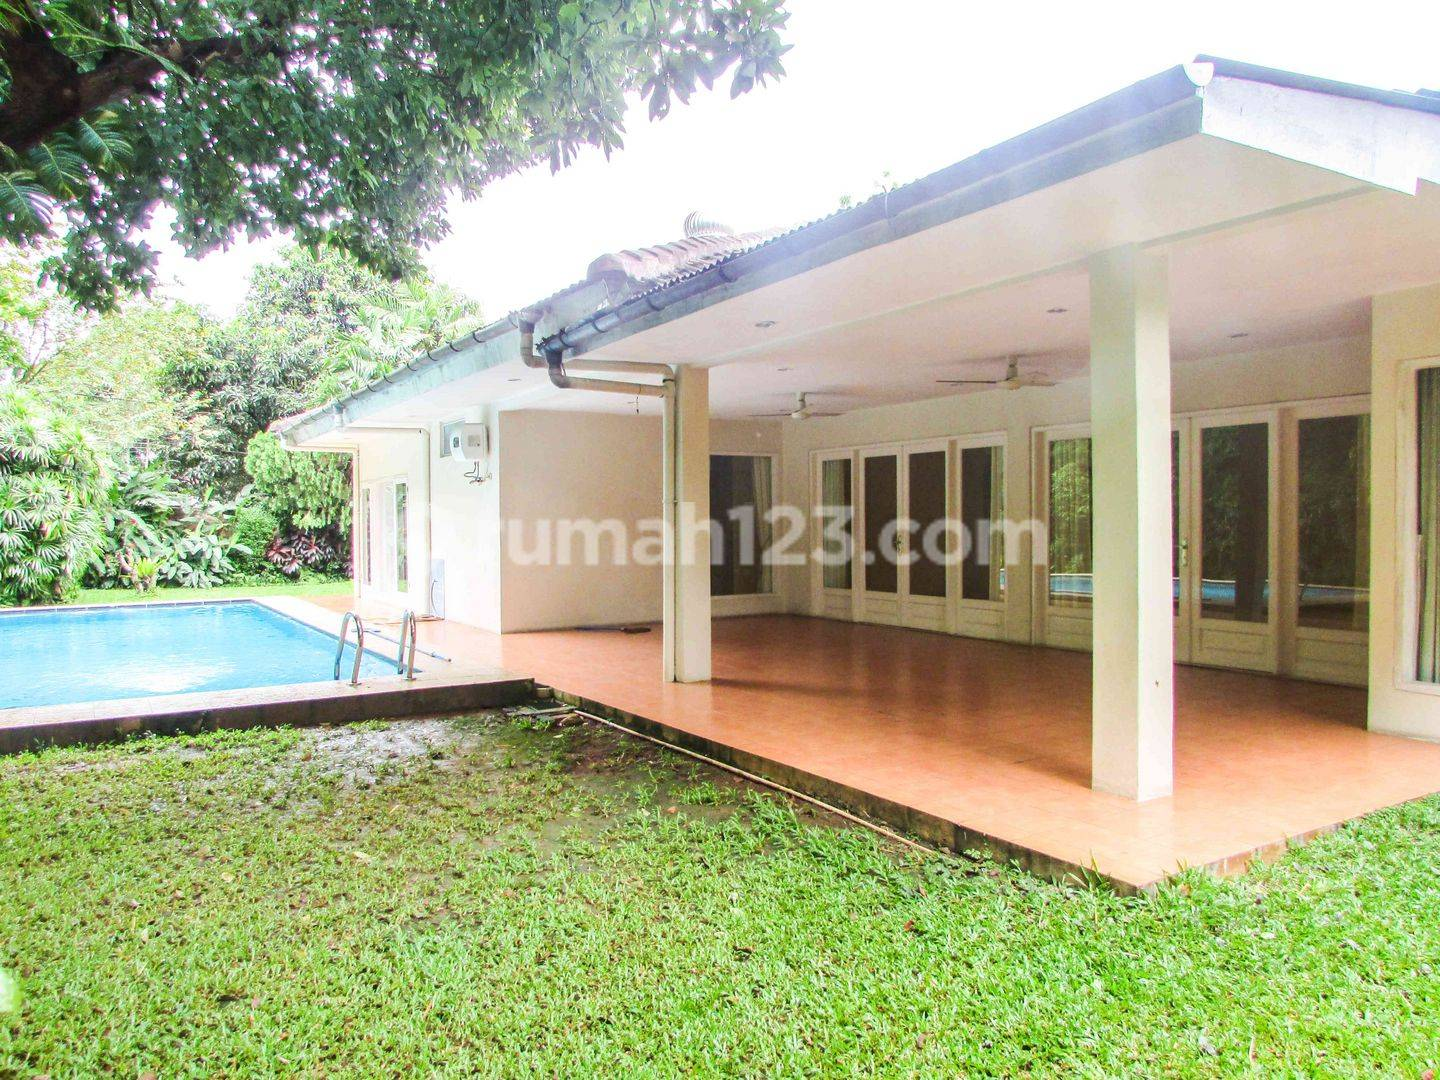 Stand-alone house in Kemang, 700sqm 4 BR with Private pool and garden,